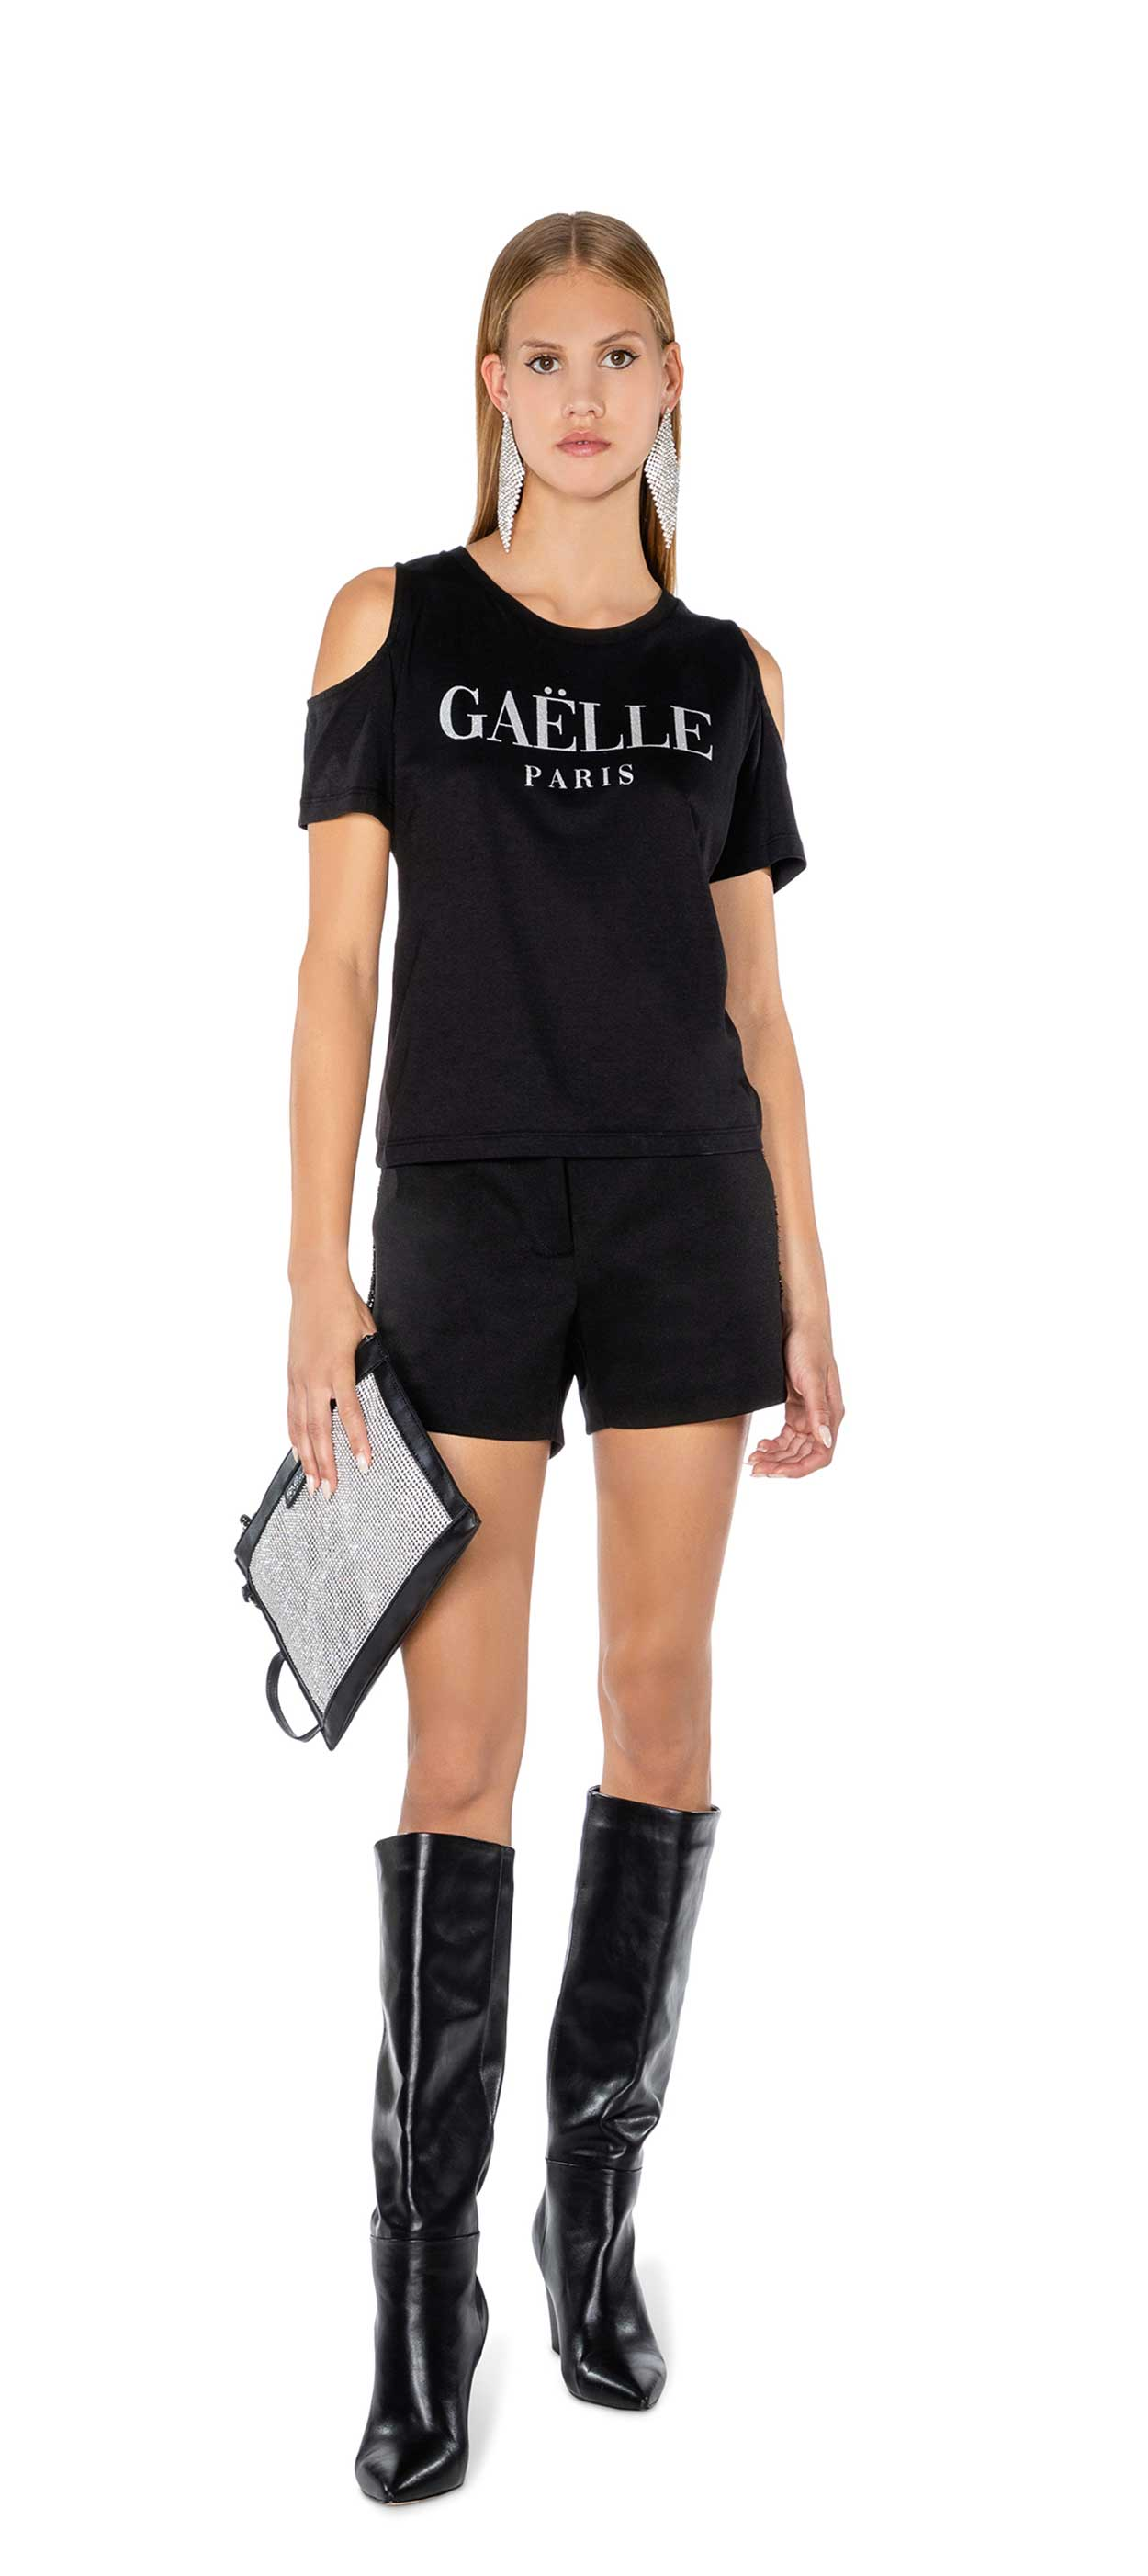 T-SHIRT - GBD8154 - GAELLE PARIS